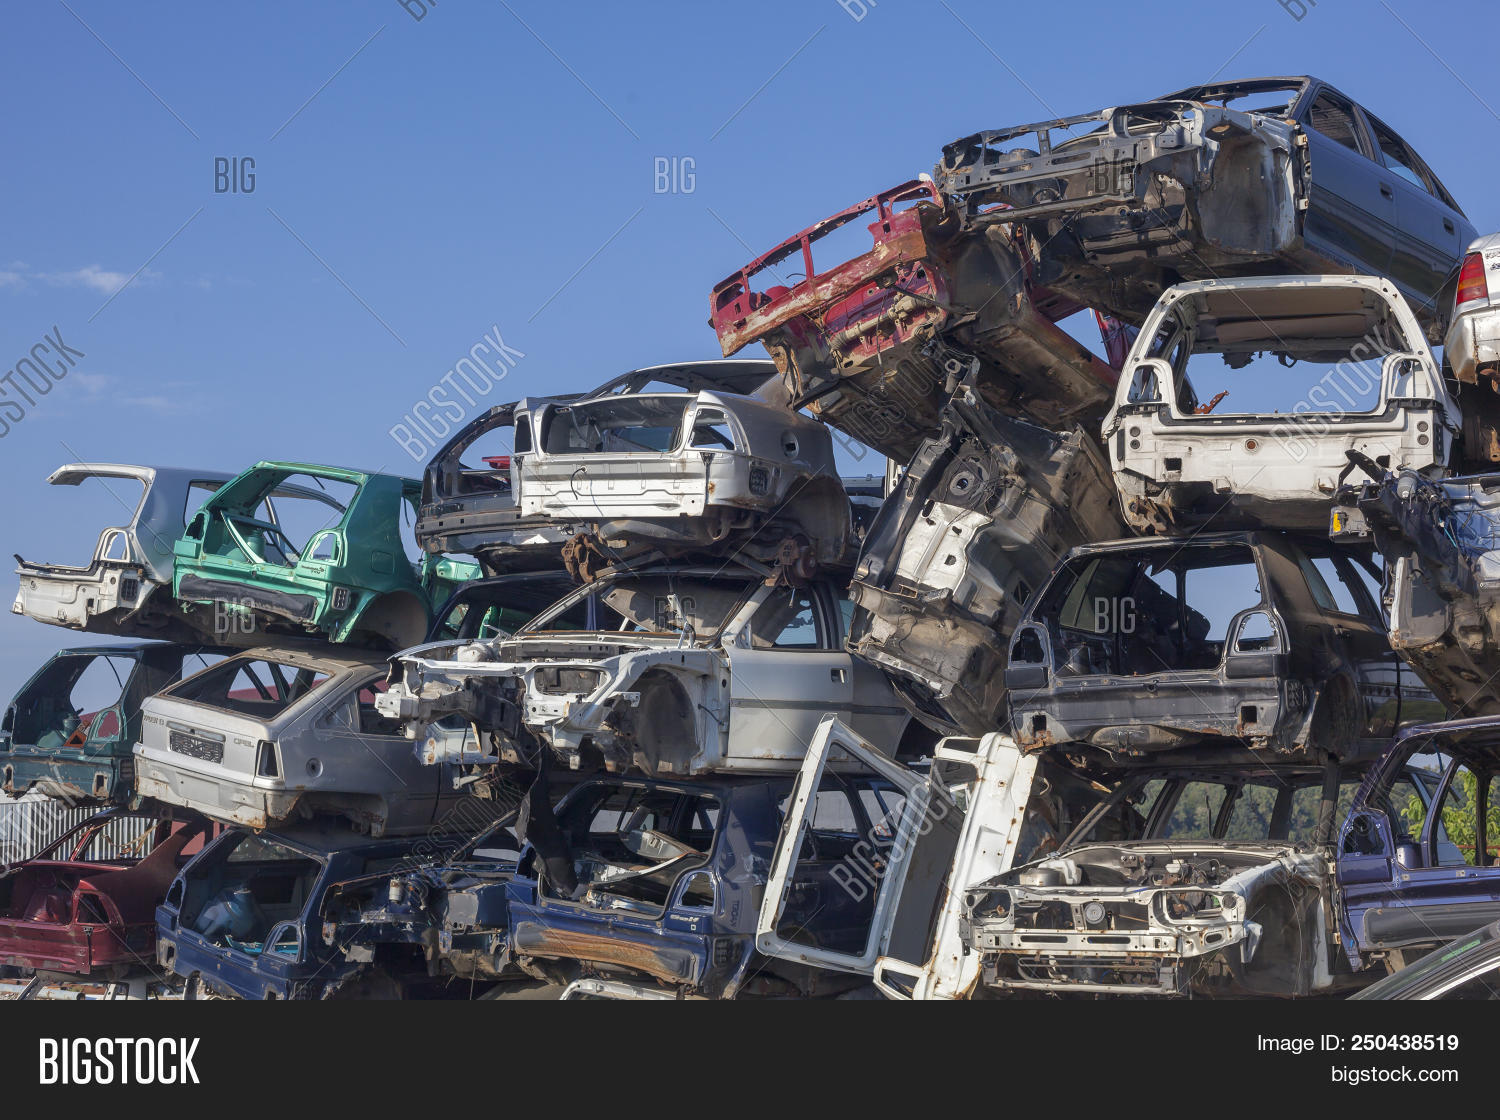 accident,auto,automobile,broken,car,damaged,dirty,dump,eco,ecology,environment,garbage,industrial,industry,junk,junkyard,metal,obsolete,old,pollution,recycle,recycled,recycling,ruined,rusty,scrap,scrapyard,stack,steel,trash,used,vehicle,waste